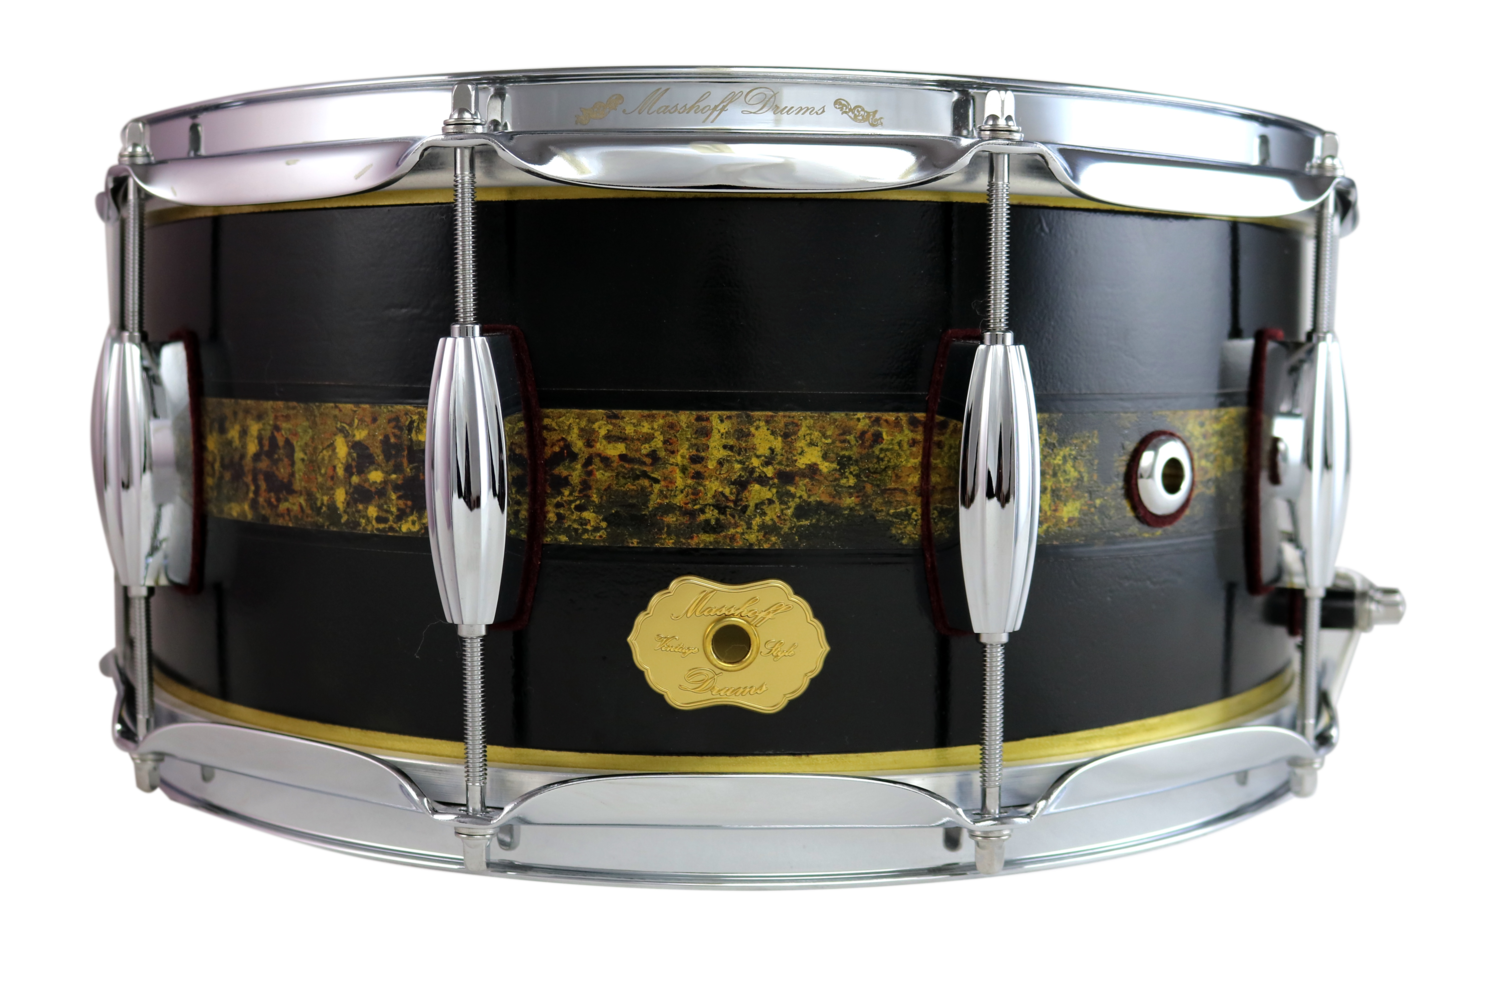 """Masshoff Drums 14""""x 6.5"""" Messing Snare Drum """"Avalon Brass / Duco King"""""""